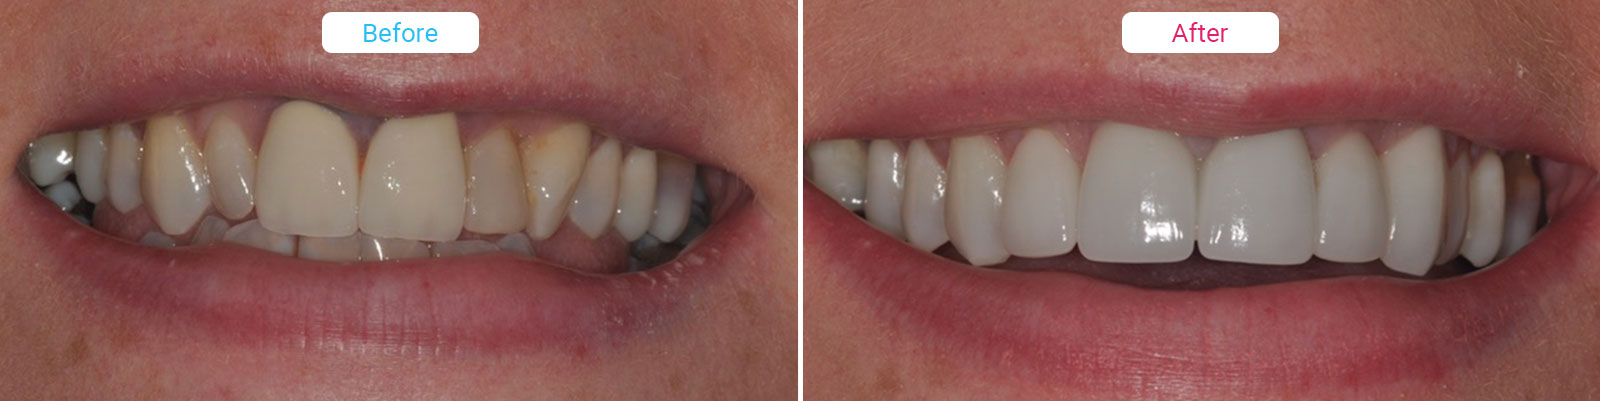 Cosmetic Dentistry before and after photo